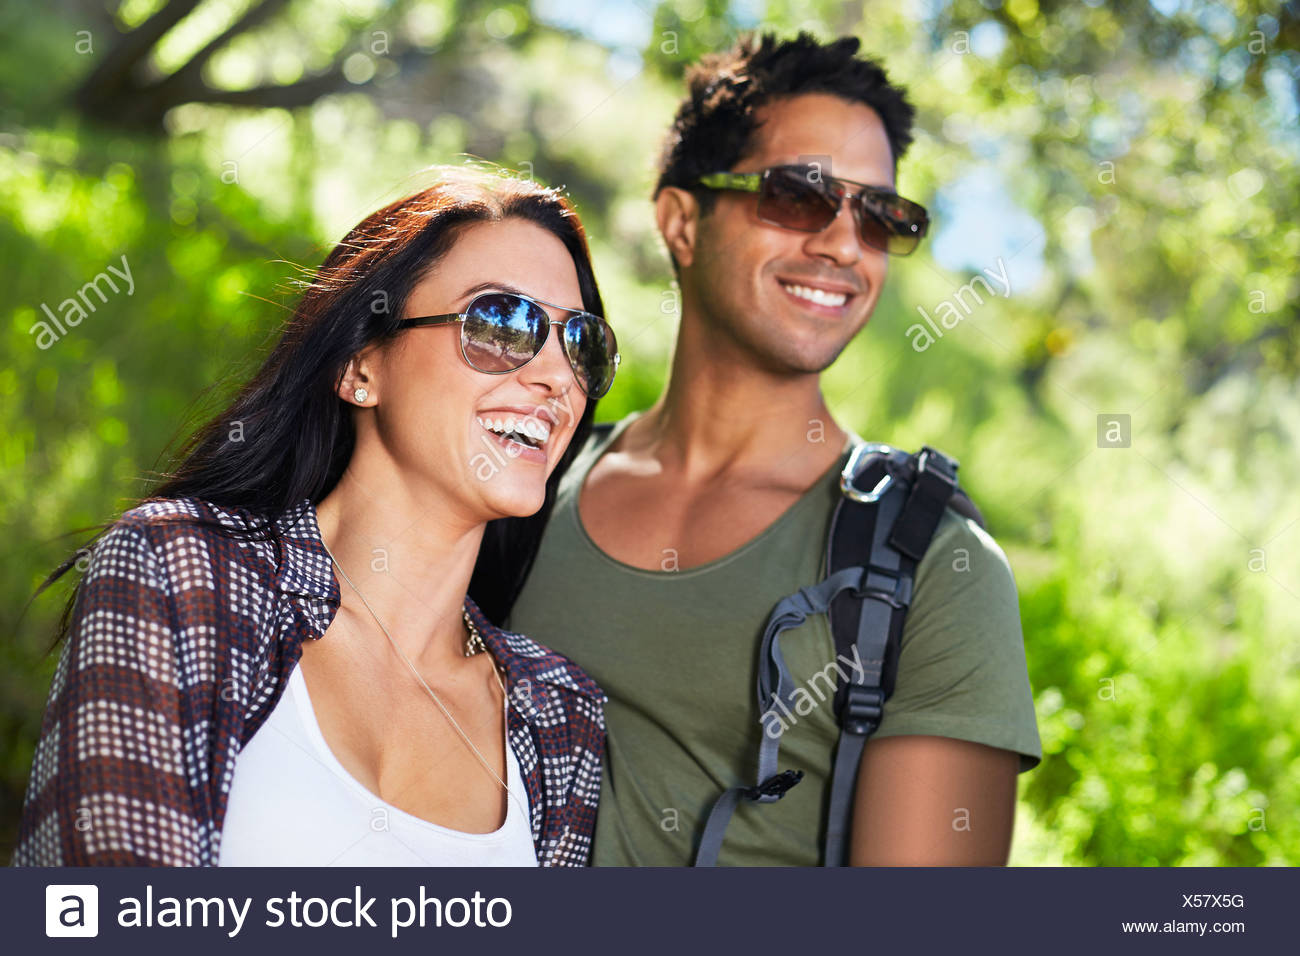 Smiling couple in woodlands - Stock Image